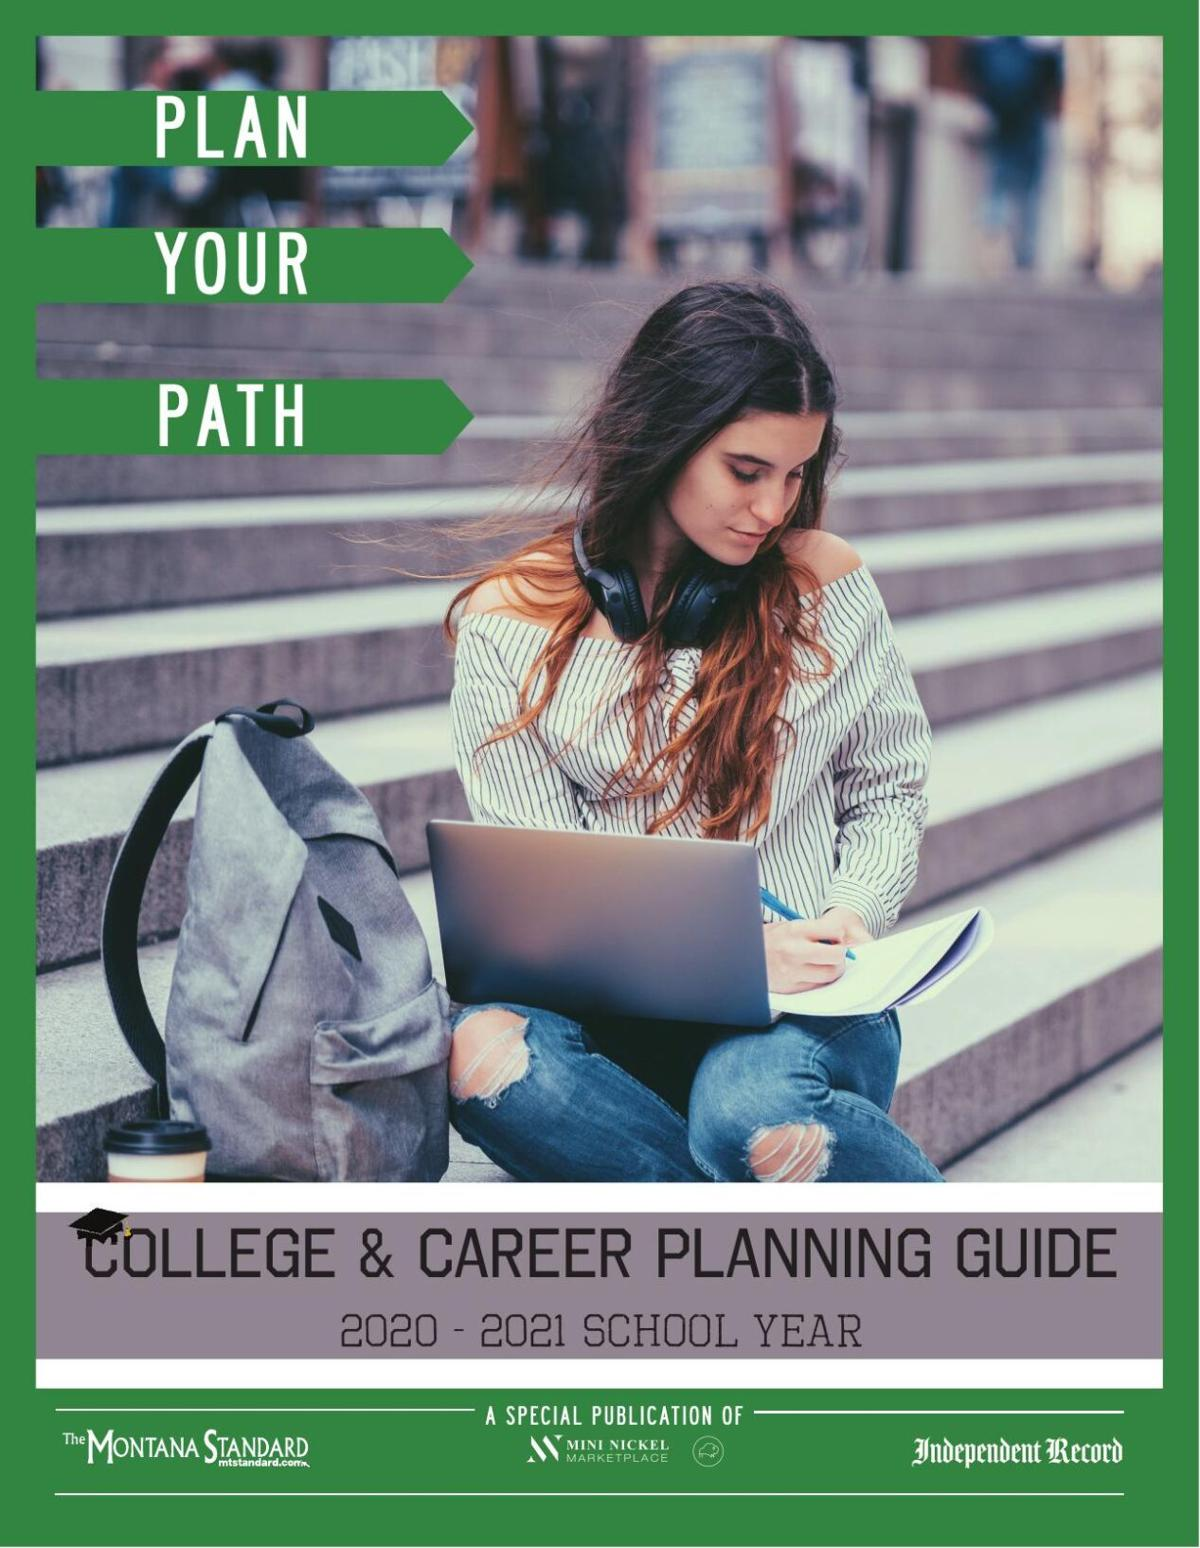 College & Career Planning Guide 2020-2021